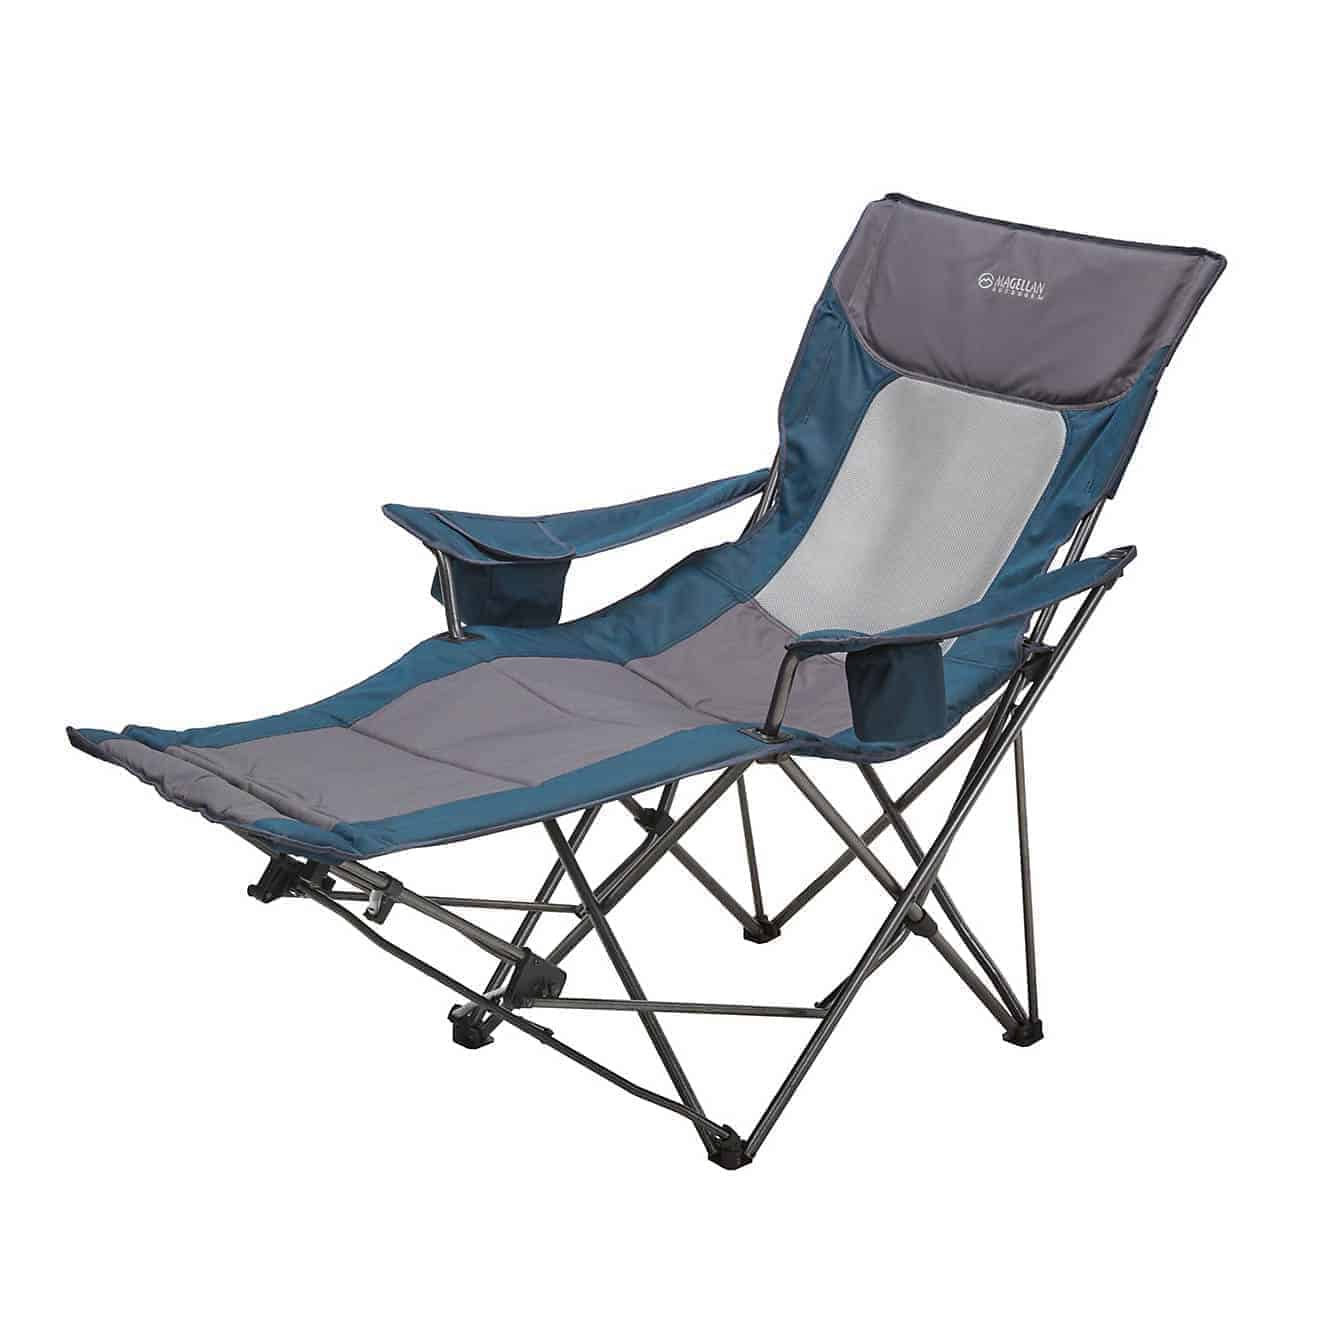 Outdoor-Chair-with-Footrest-Fathers-Day-Gift-Ideas